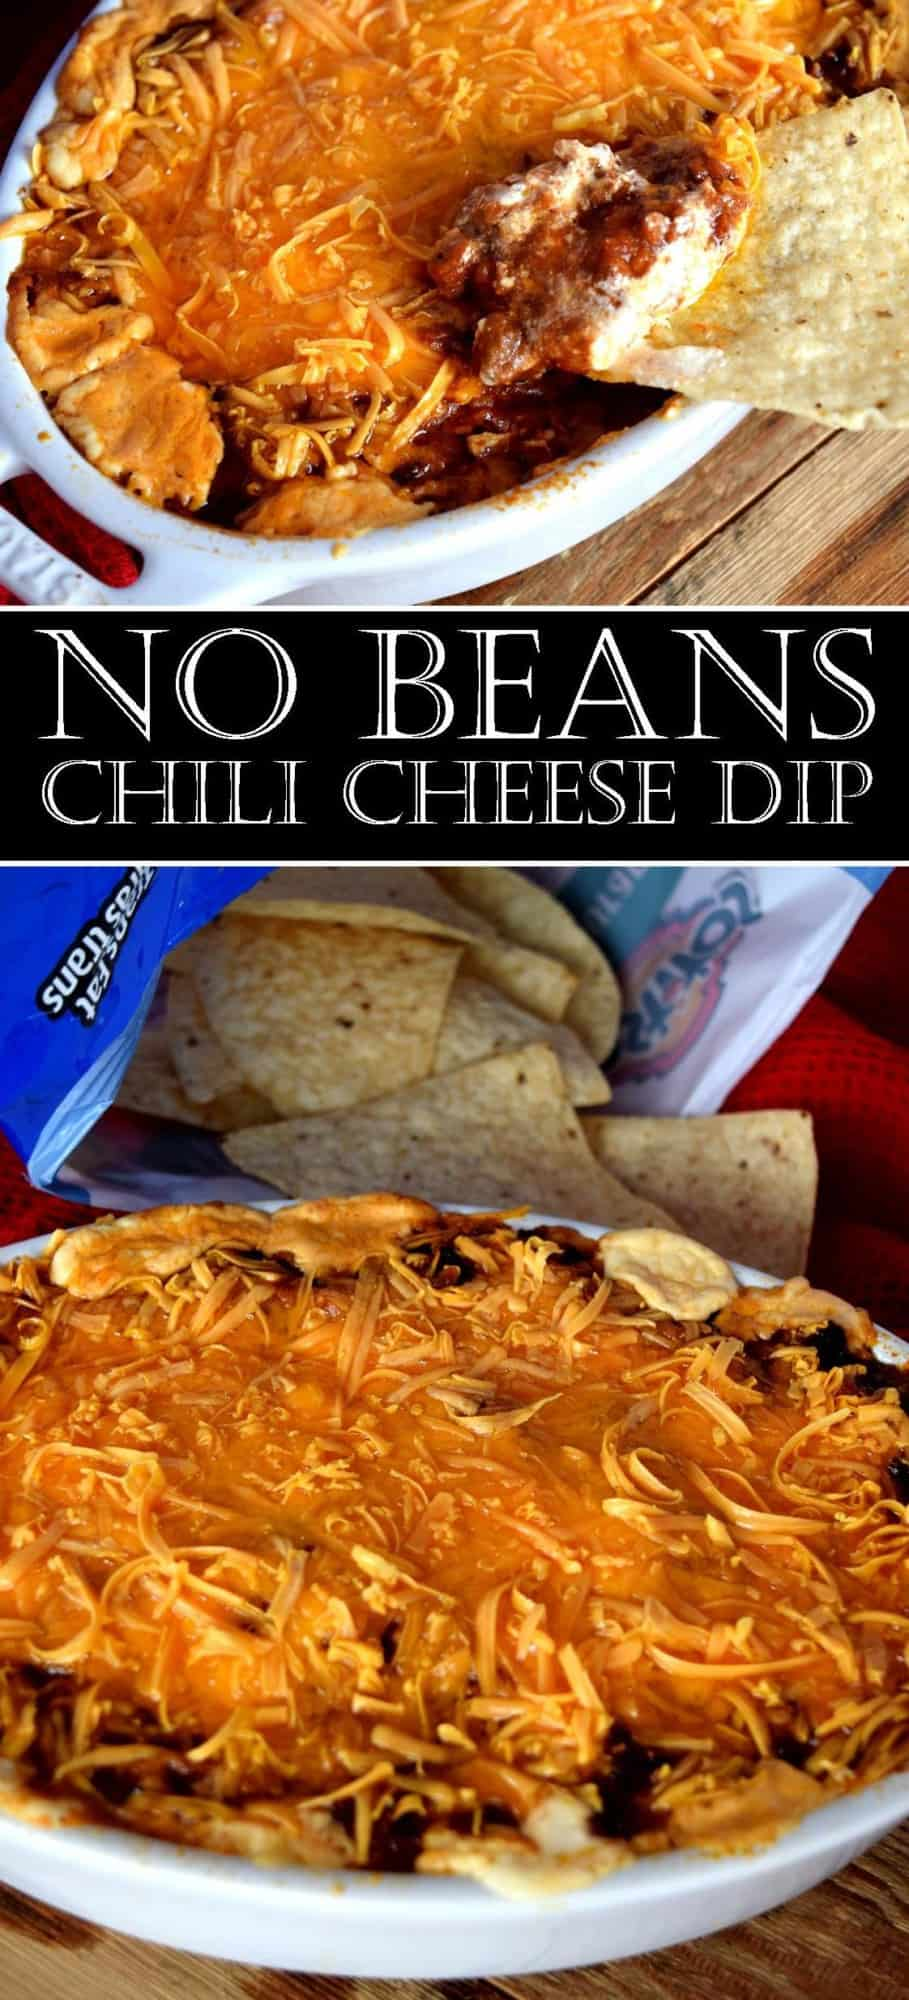 NO BEANS CHILI CHEESE DIP